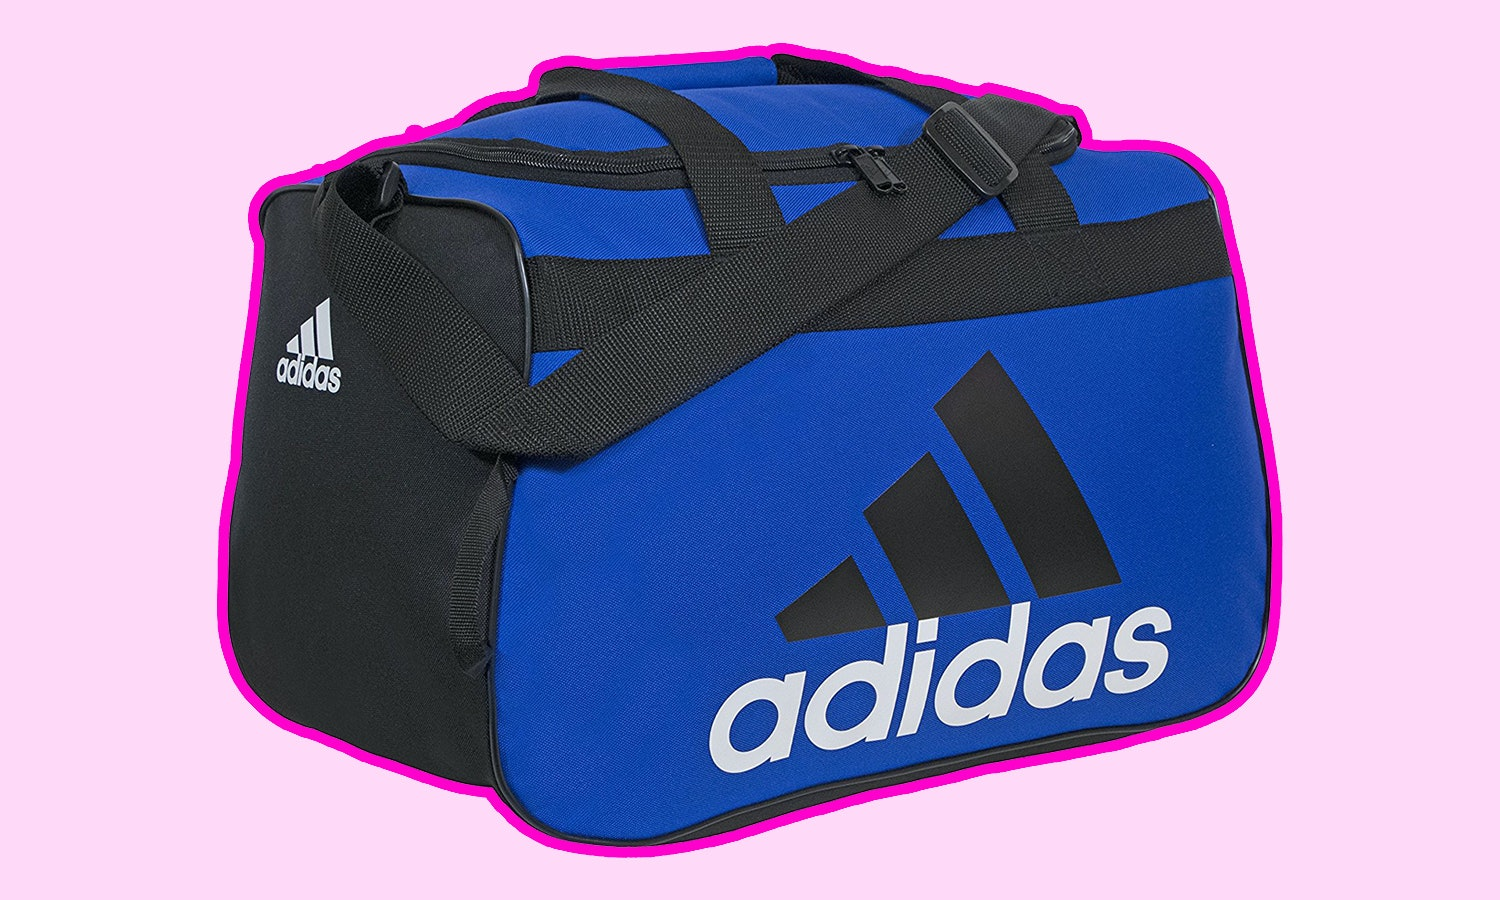 baa5db1a3c The 4 Best Small Gym Bags